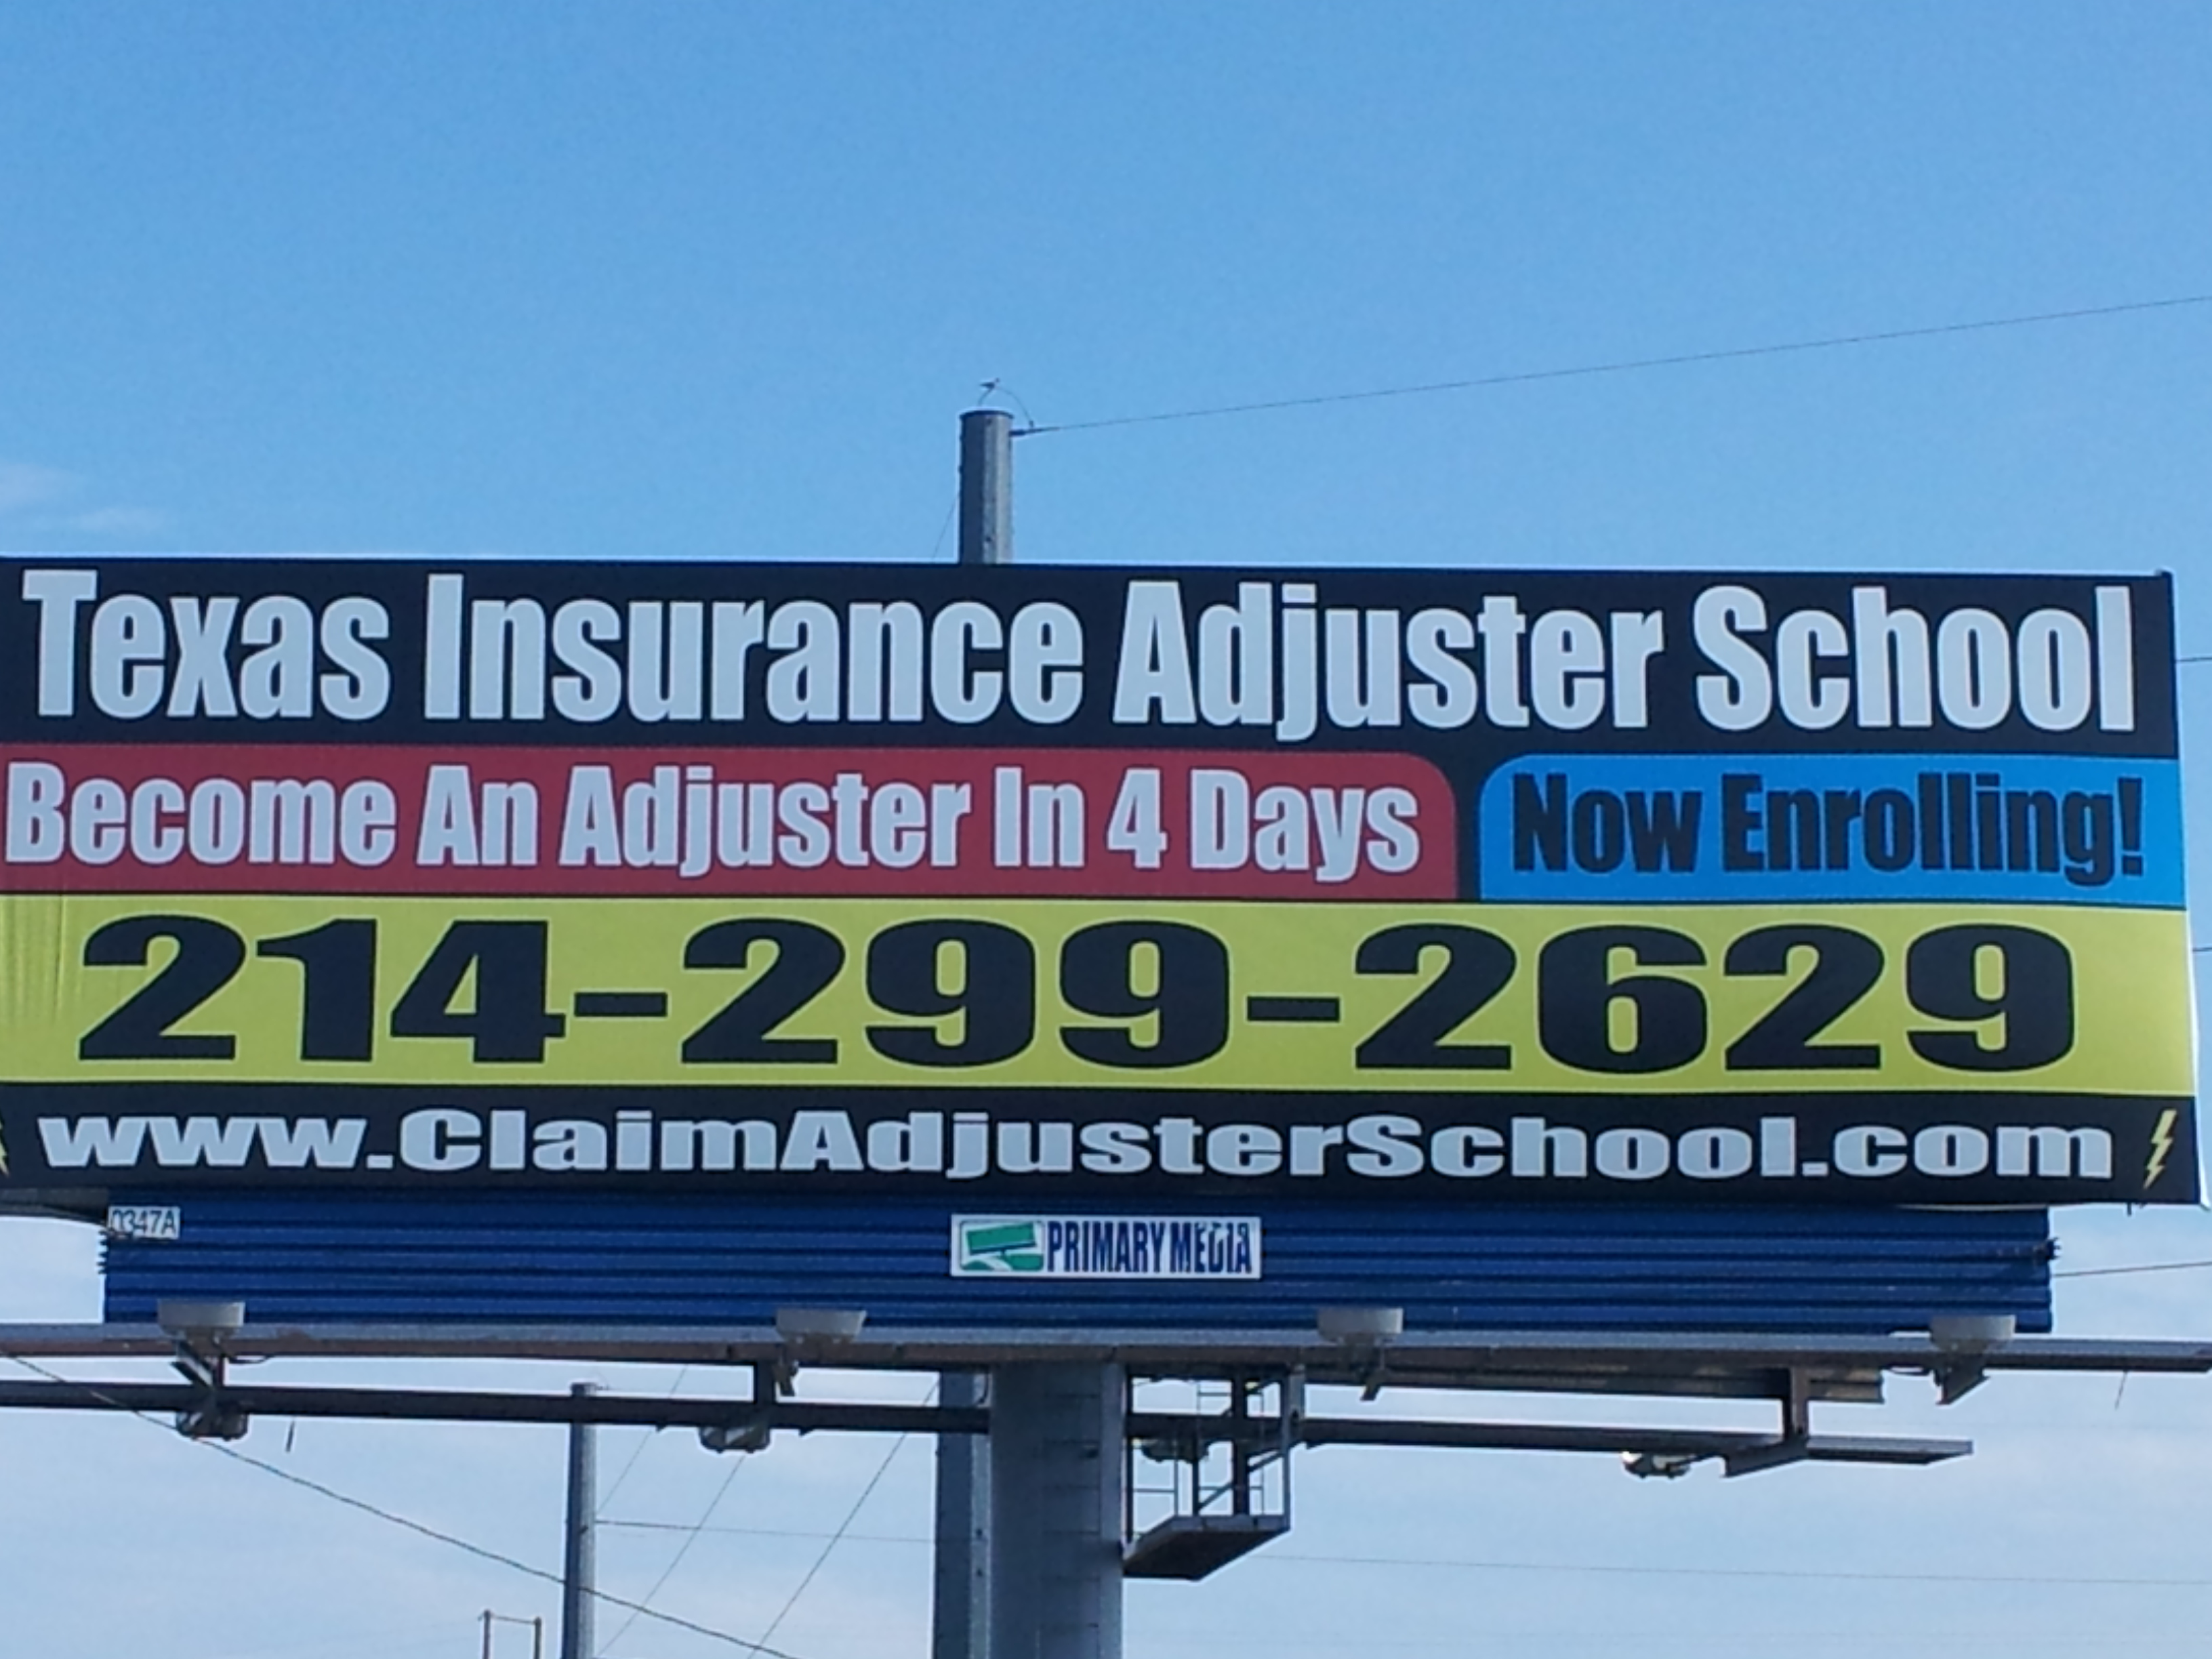 Cheapest Car Insurance Quotes in Galveston TX